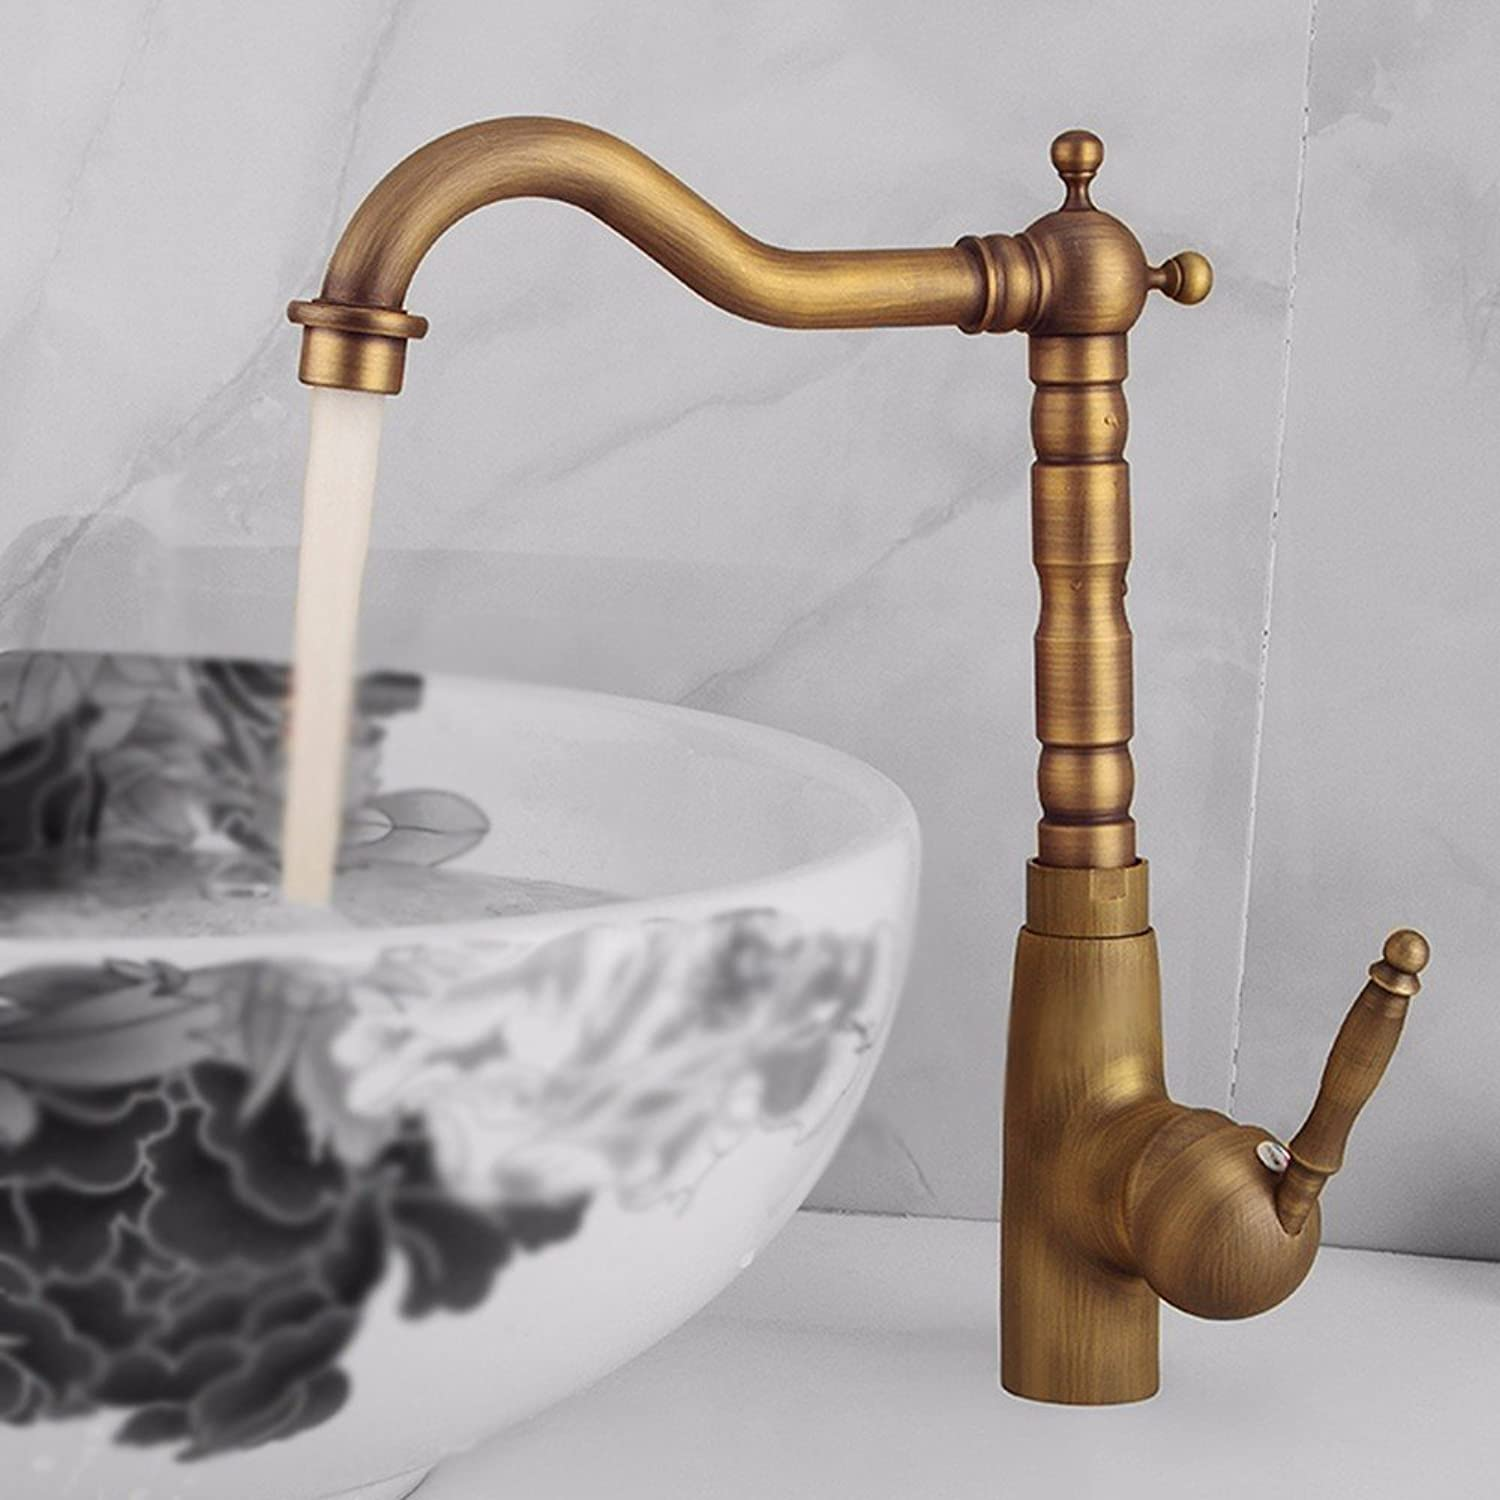 AWXJX European Style Retro All Copper Hot And Cold Single Hole Washbasin Single Handle Sink Faucet (29  18Cm)